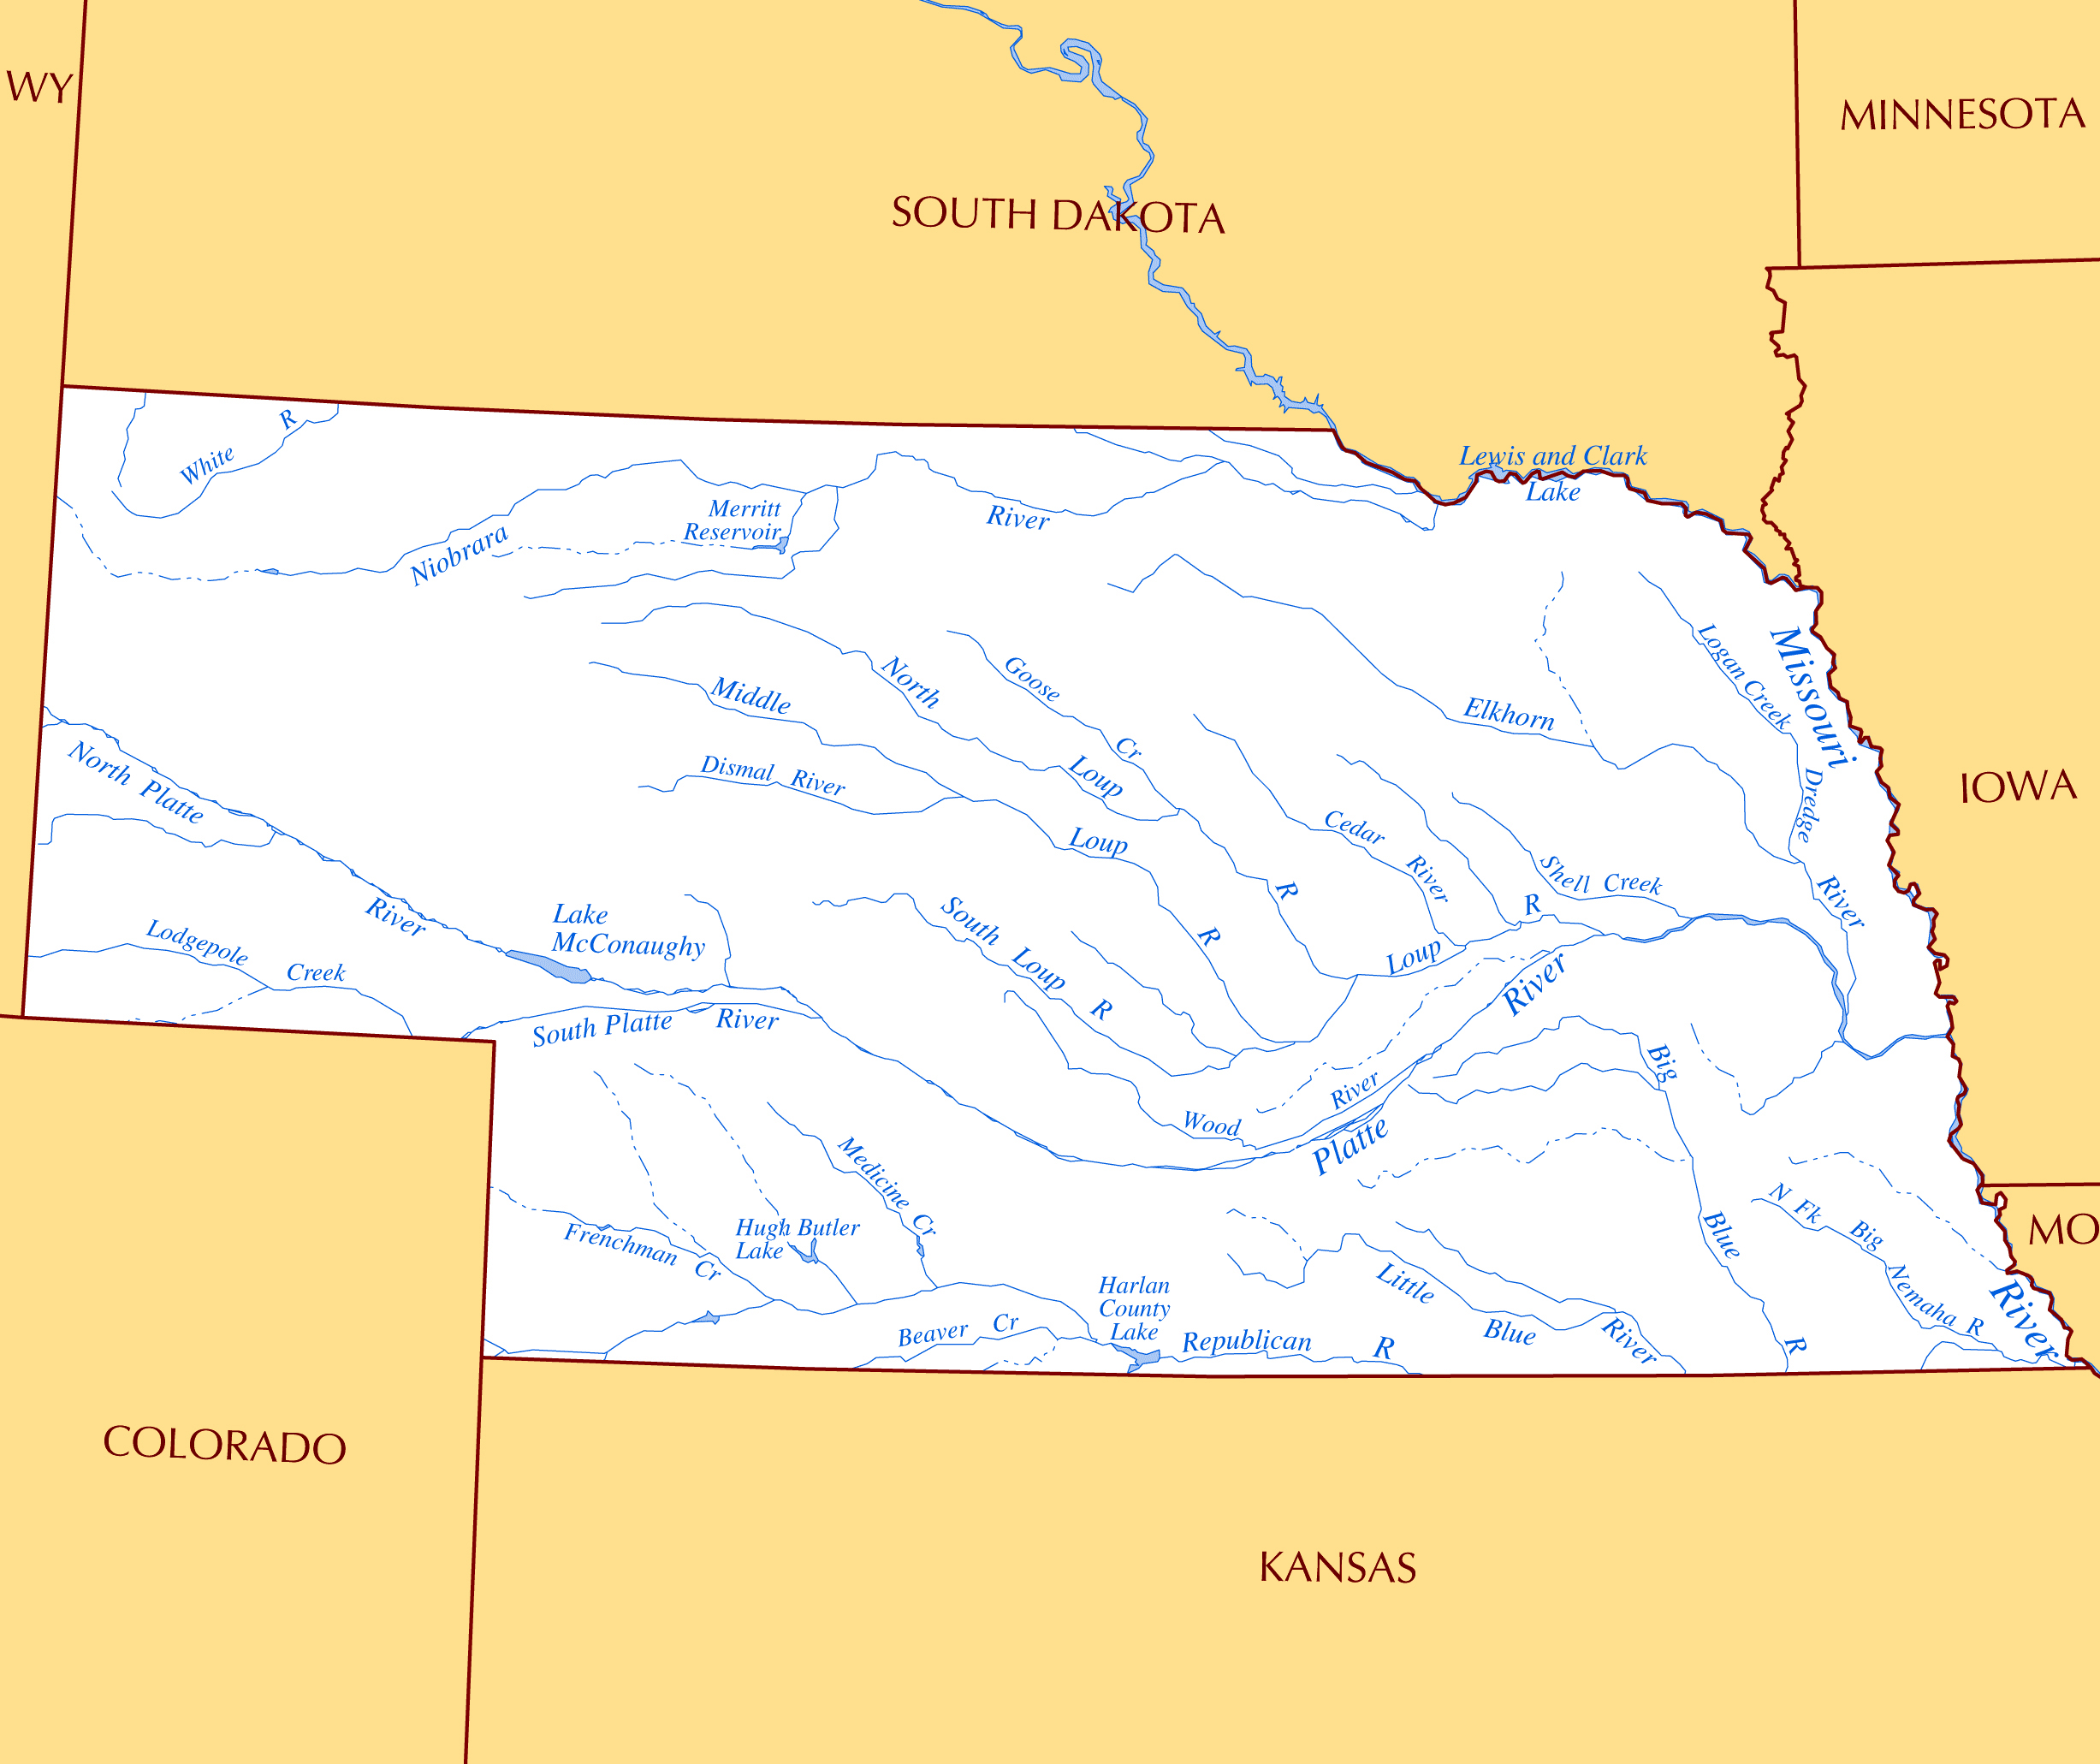 Large Rivers And Lakes Map Of Nebraska State Nebraska State Usa - Us-map-nebraska-state